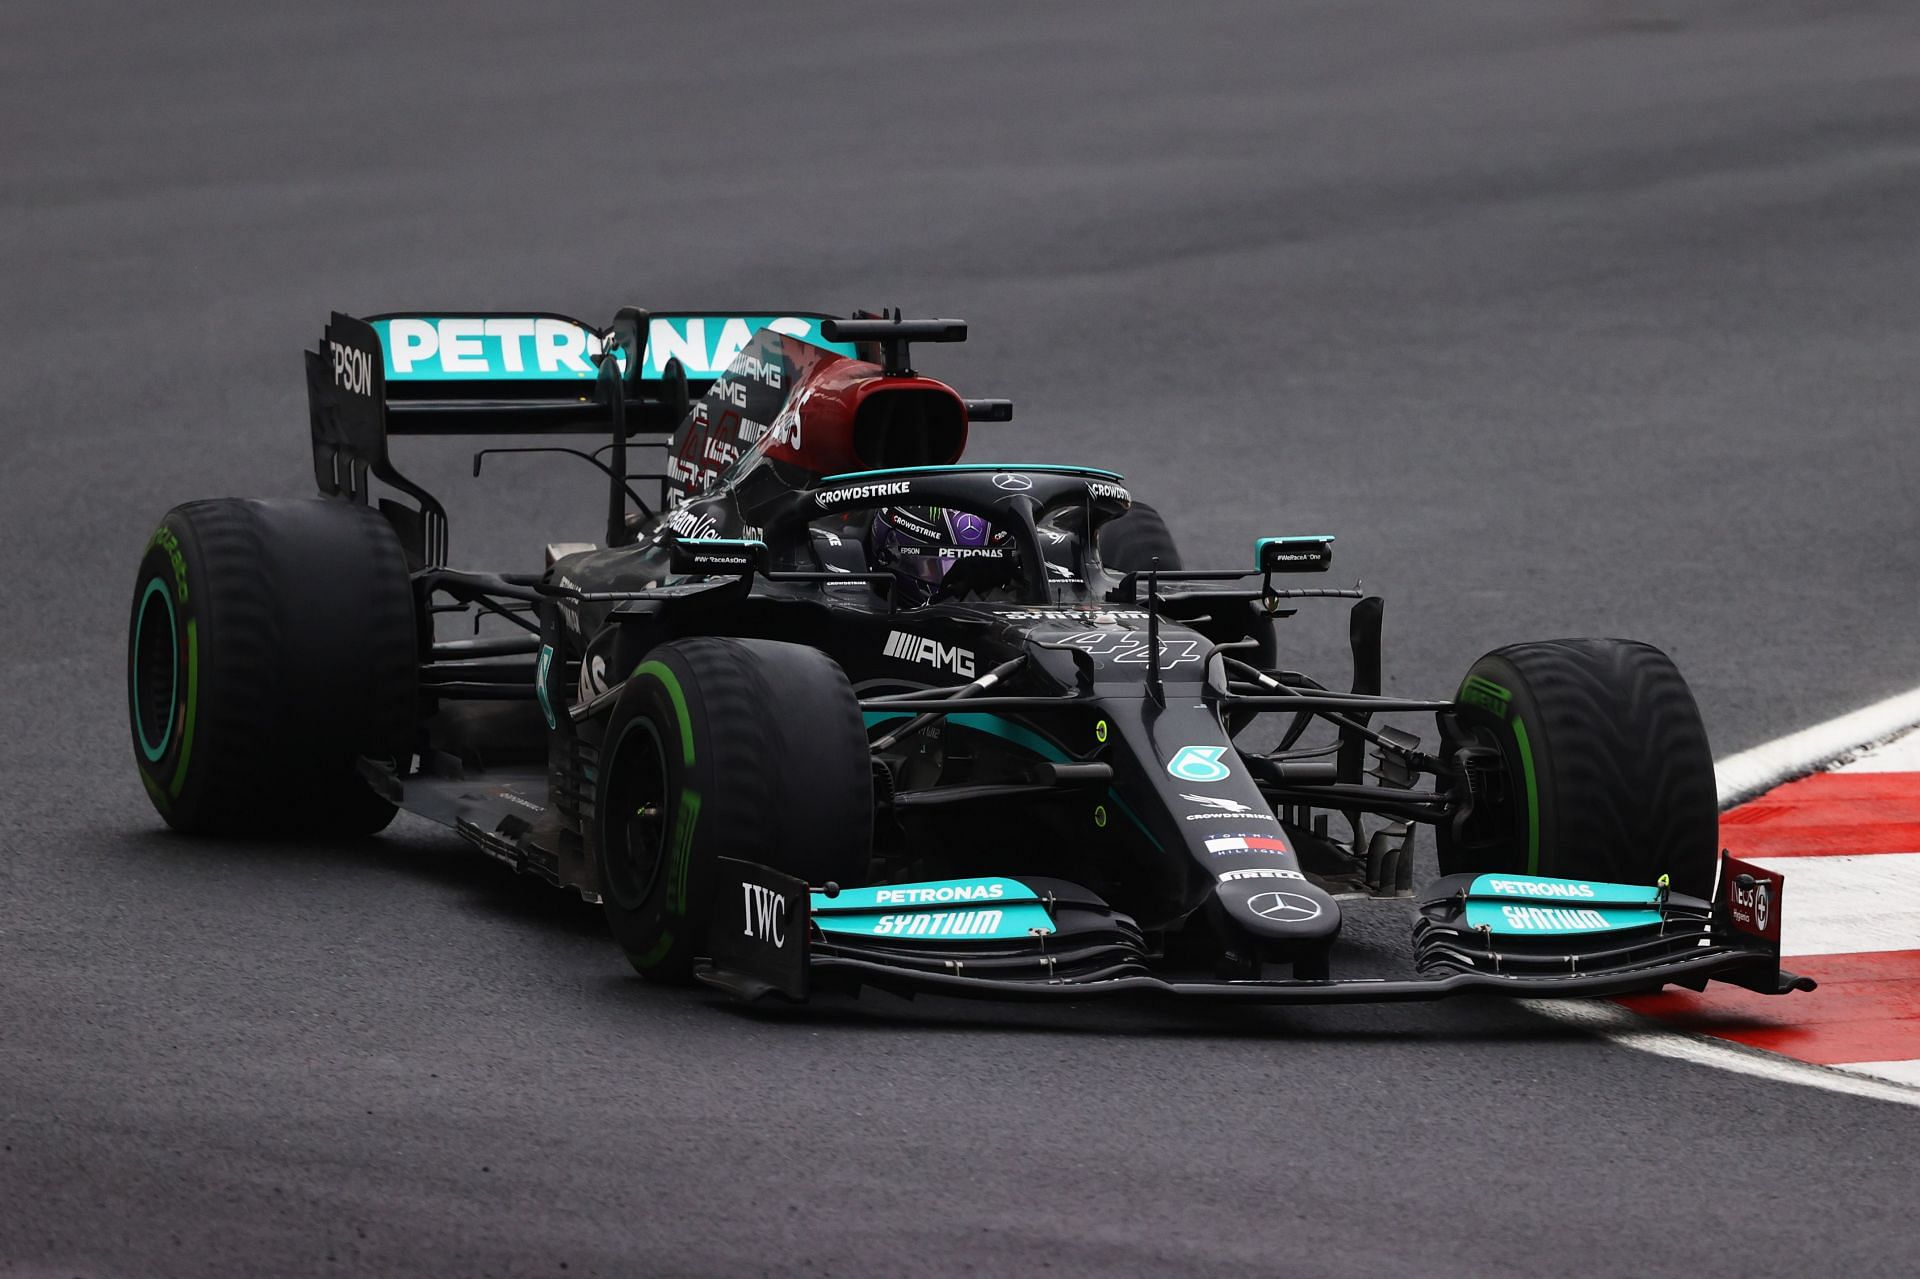 Lewis Hamilton driving the Mercedes W12 during the 2021 Turkish Grand Prix at Intercity Istanbul Park. (Photo by Bryn Lennon/Getty Images)